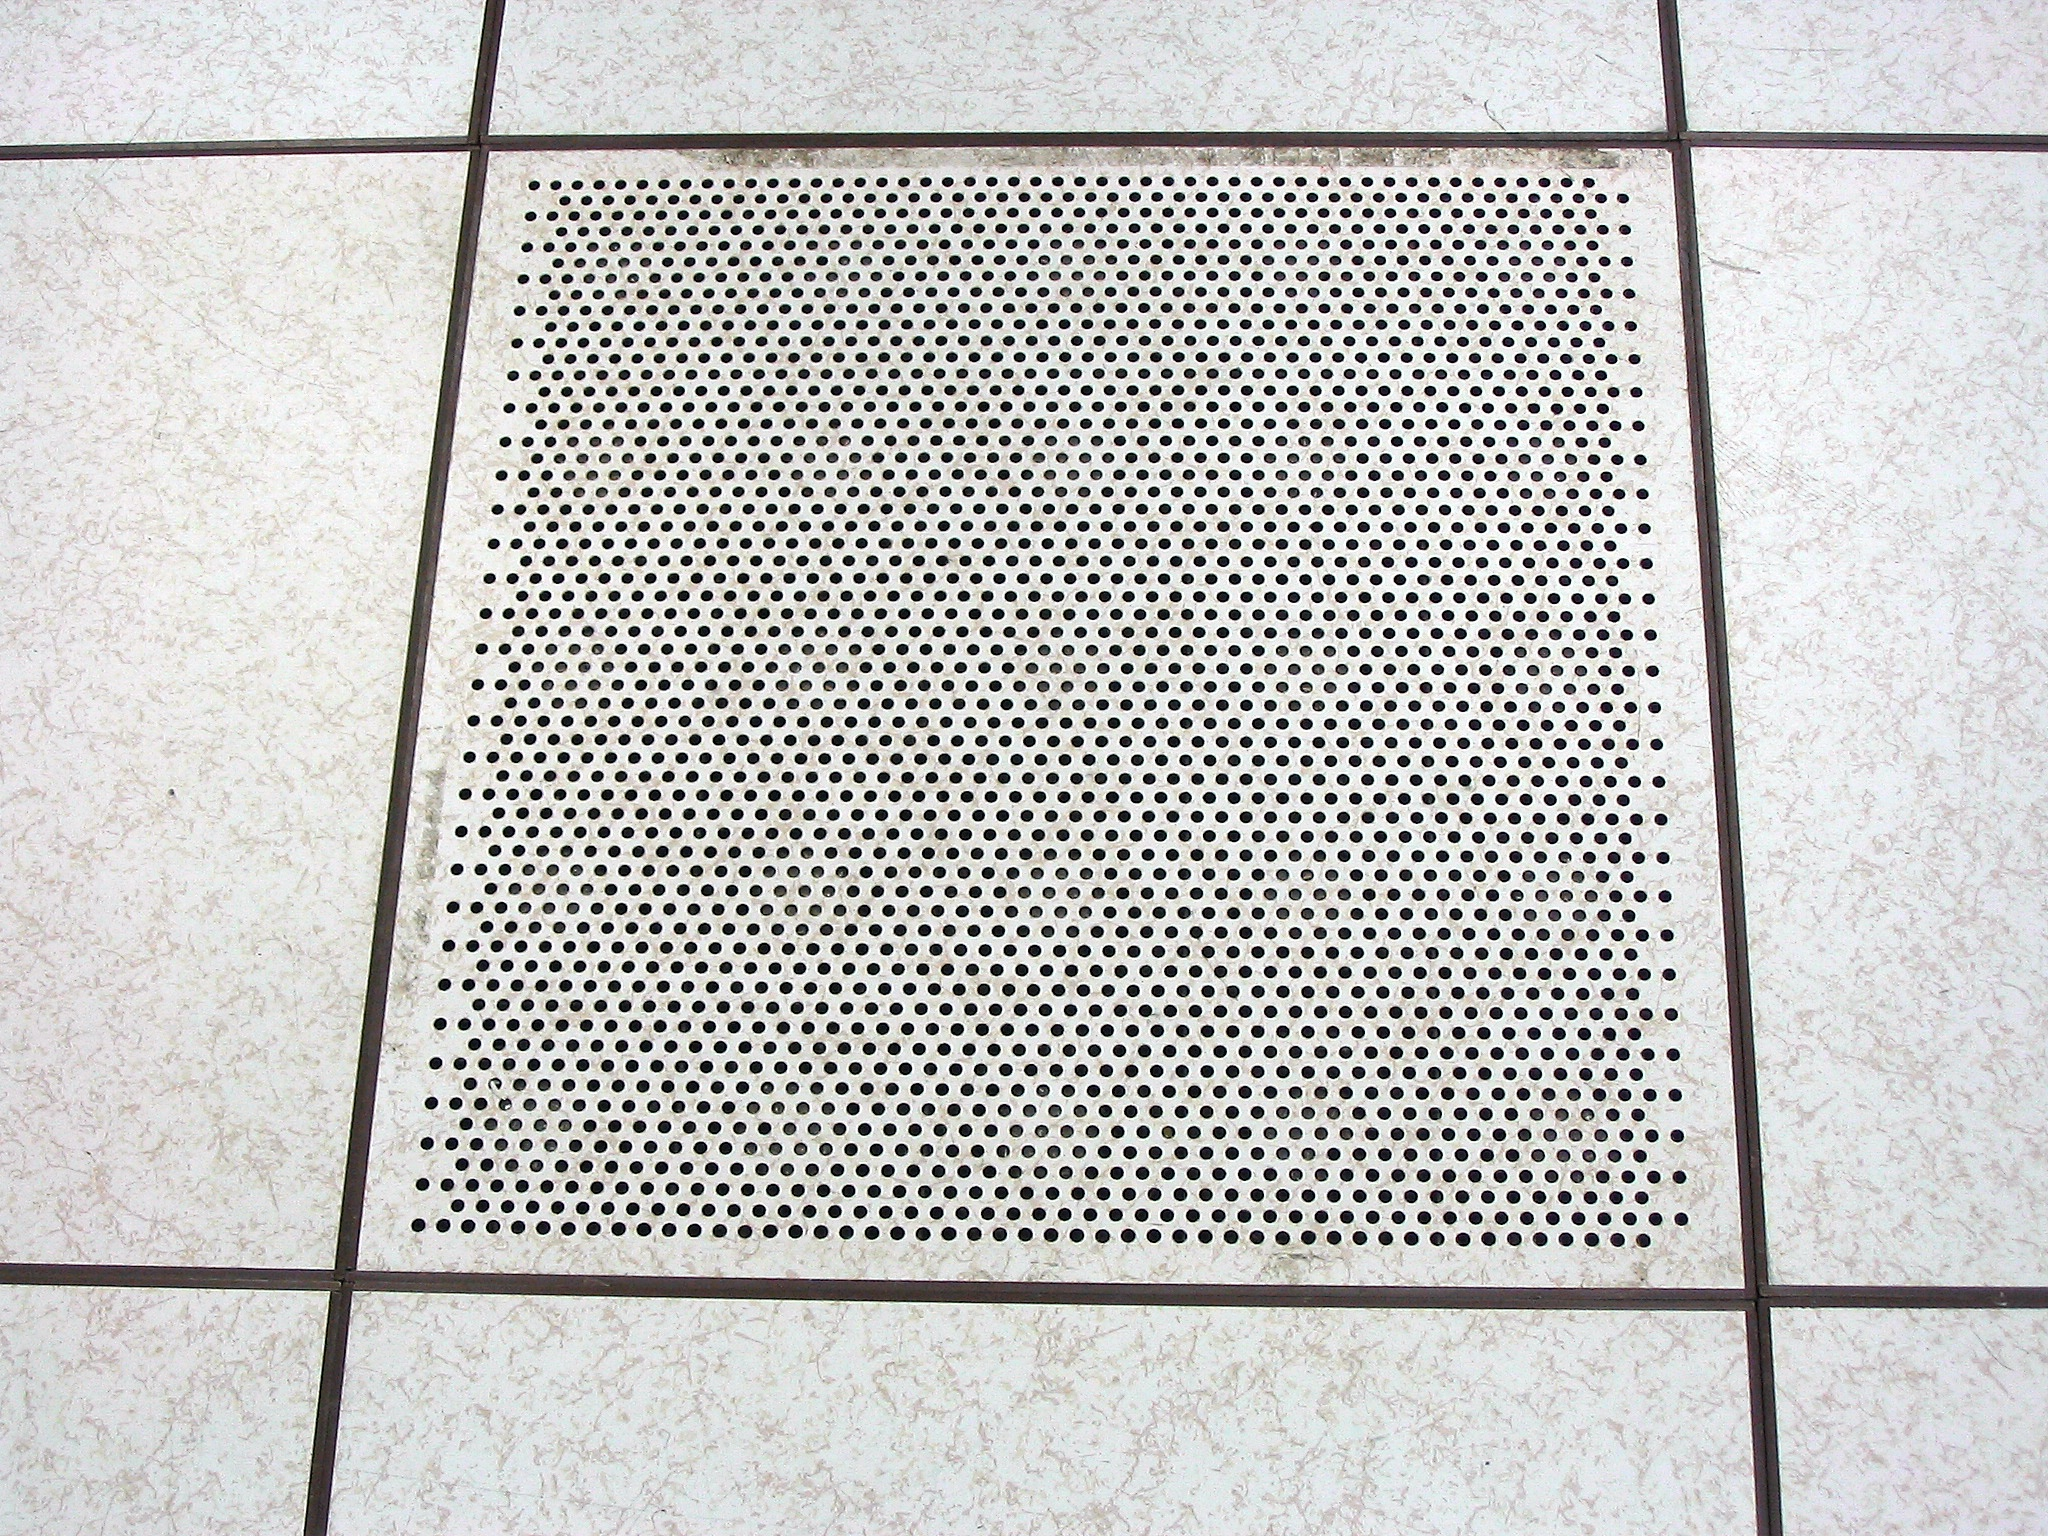 File:Perforated-ventilation-tile.jpg